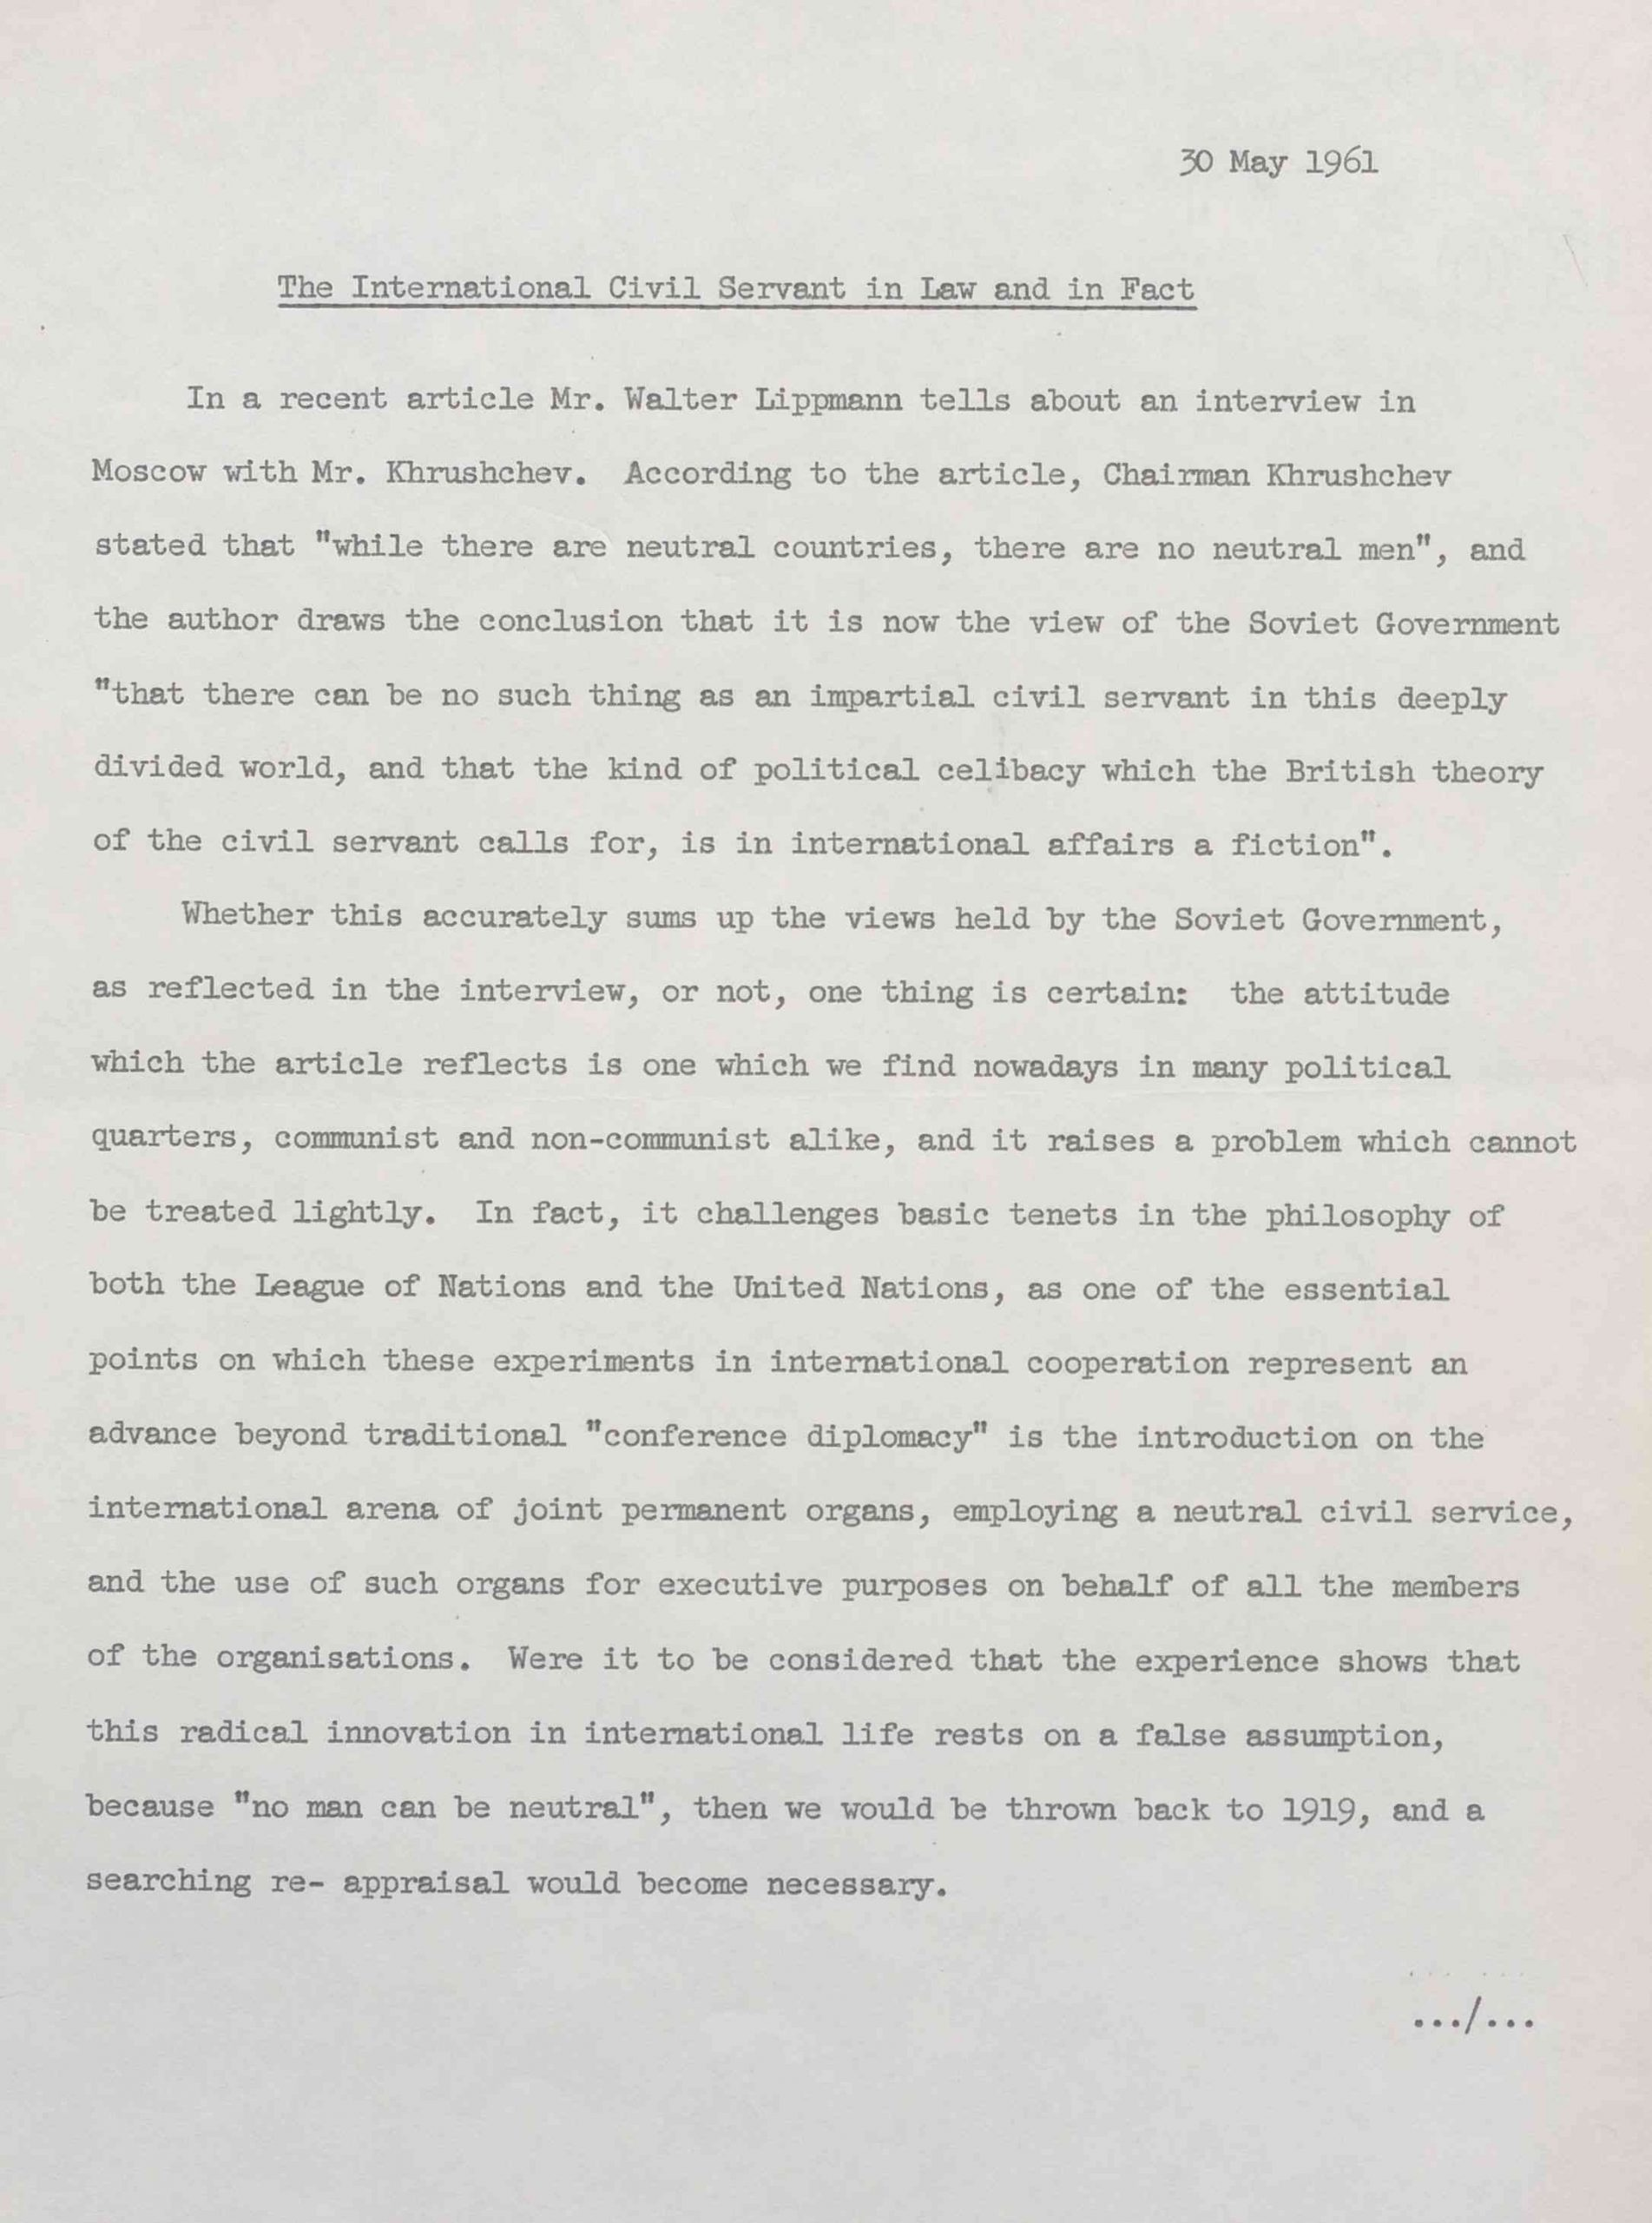 A scan of the first page of Dag Hammarskjöld's reading copy of 'The International Civil Servant in Law and in Fact'